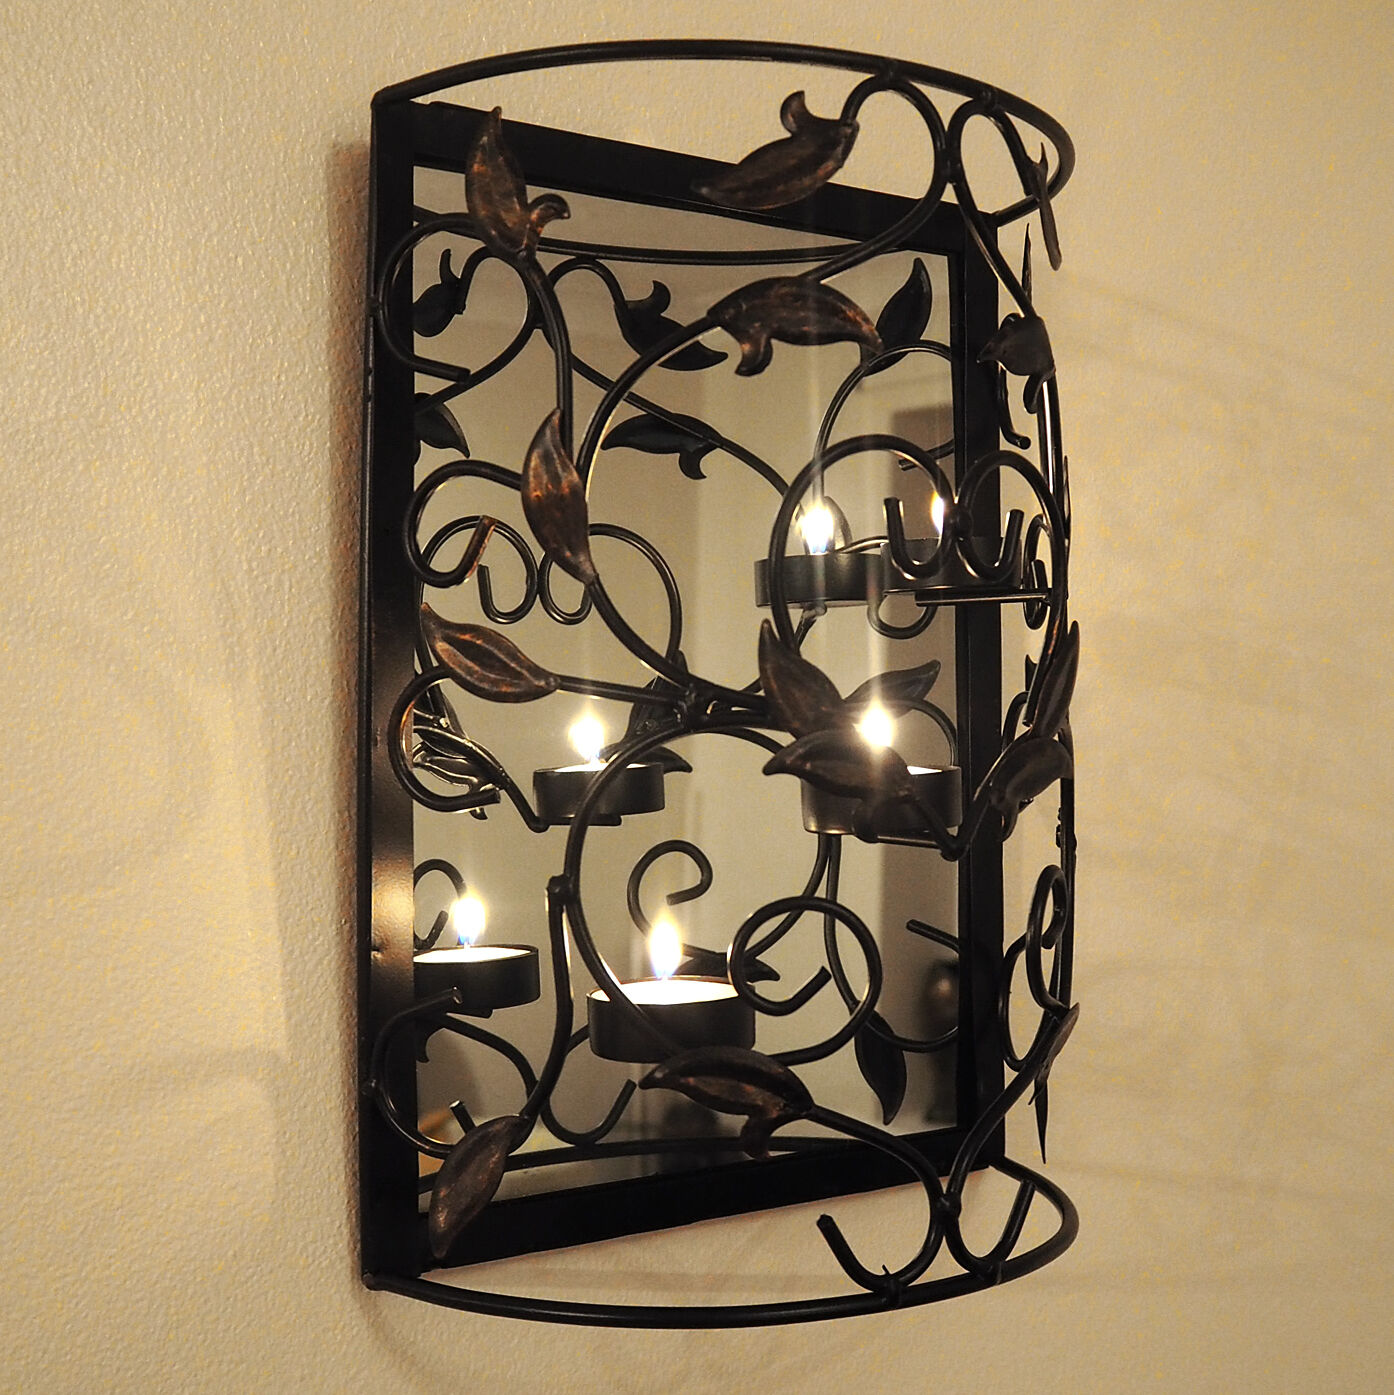 Wall Sconces Decorative Accents : Wall Mounted Metal Candle Holder with Mirror/Sconce/Shabby Chic/TeaLight/Decor ?8.95 - PicClick UK